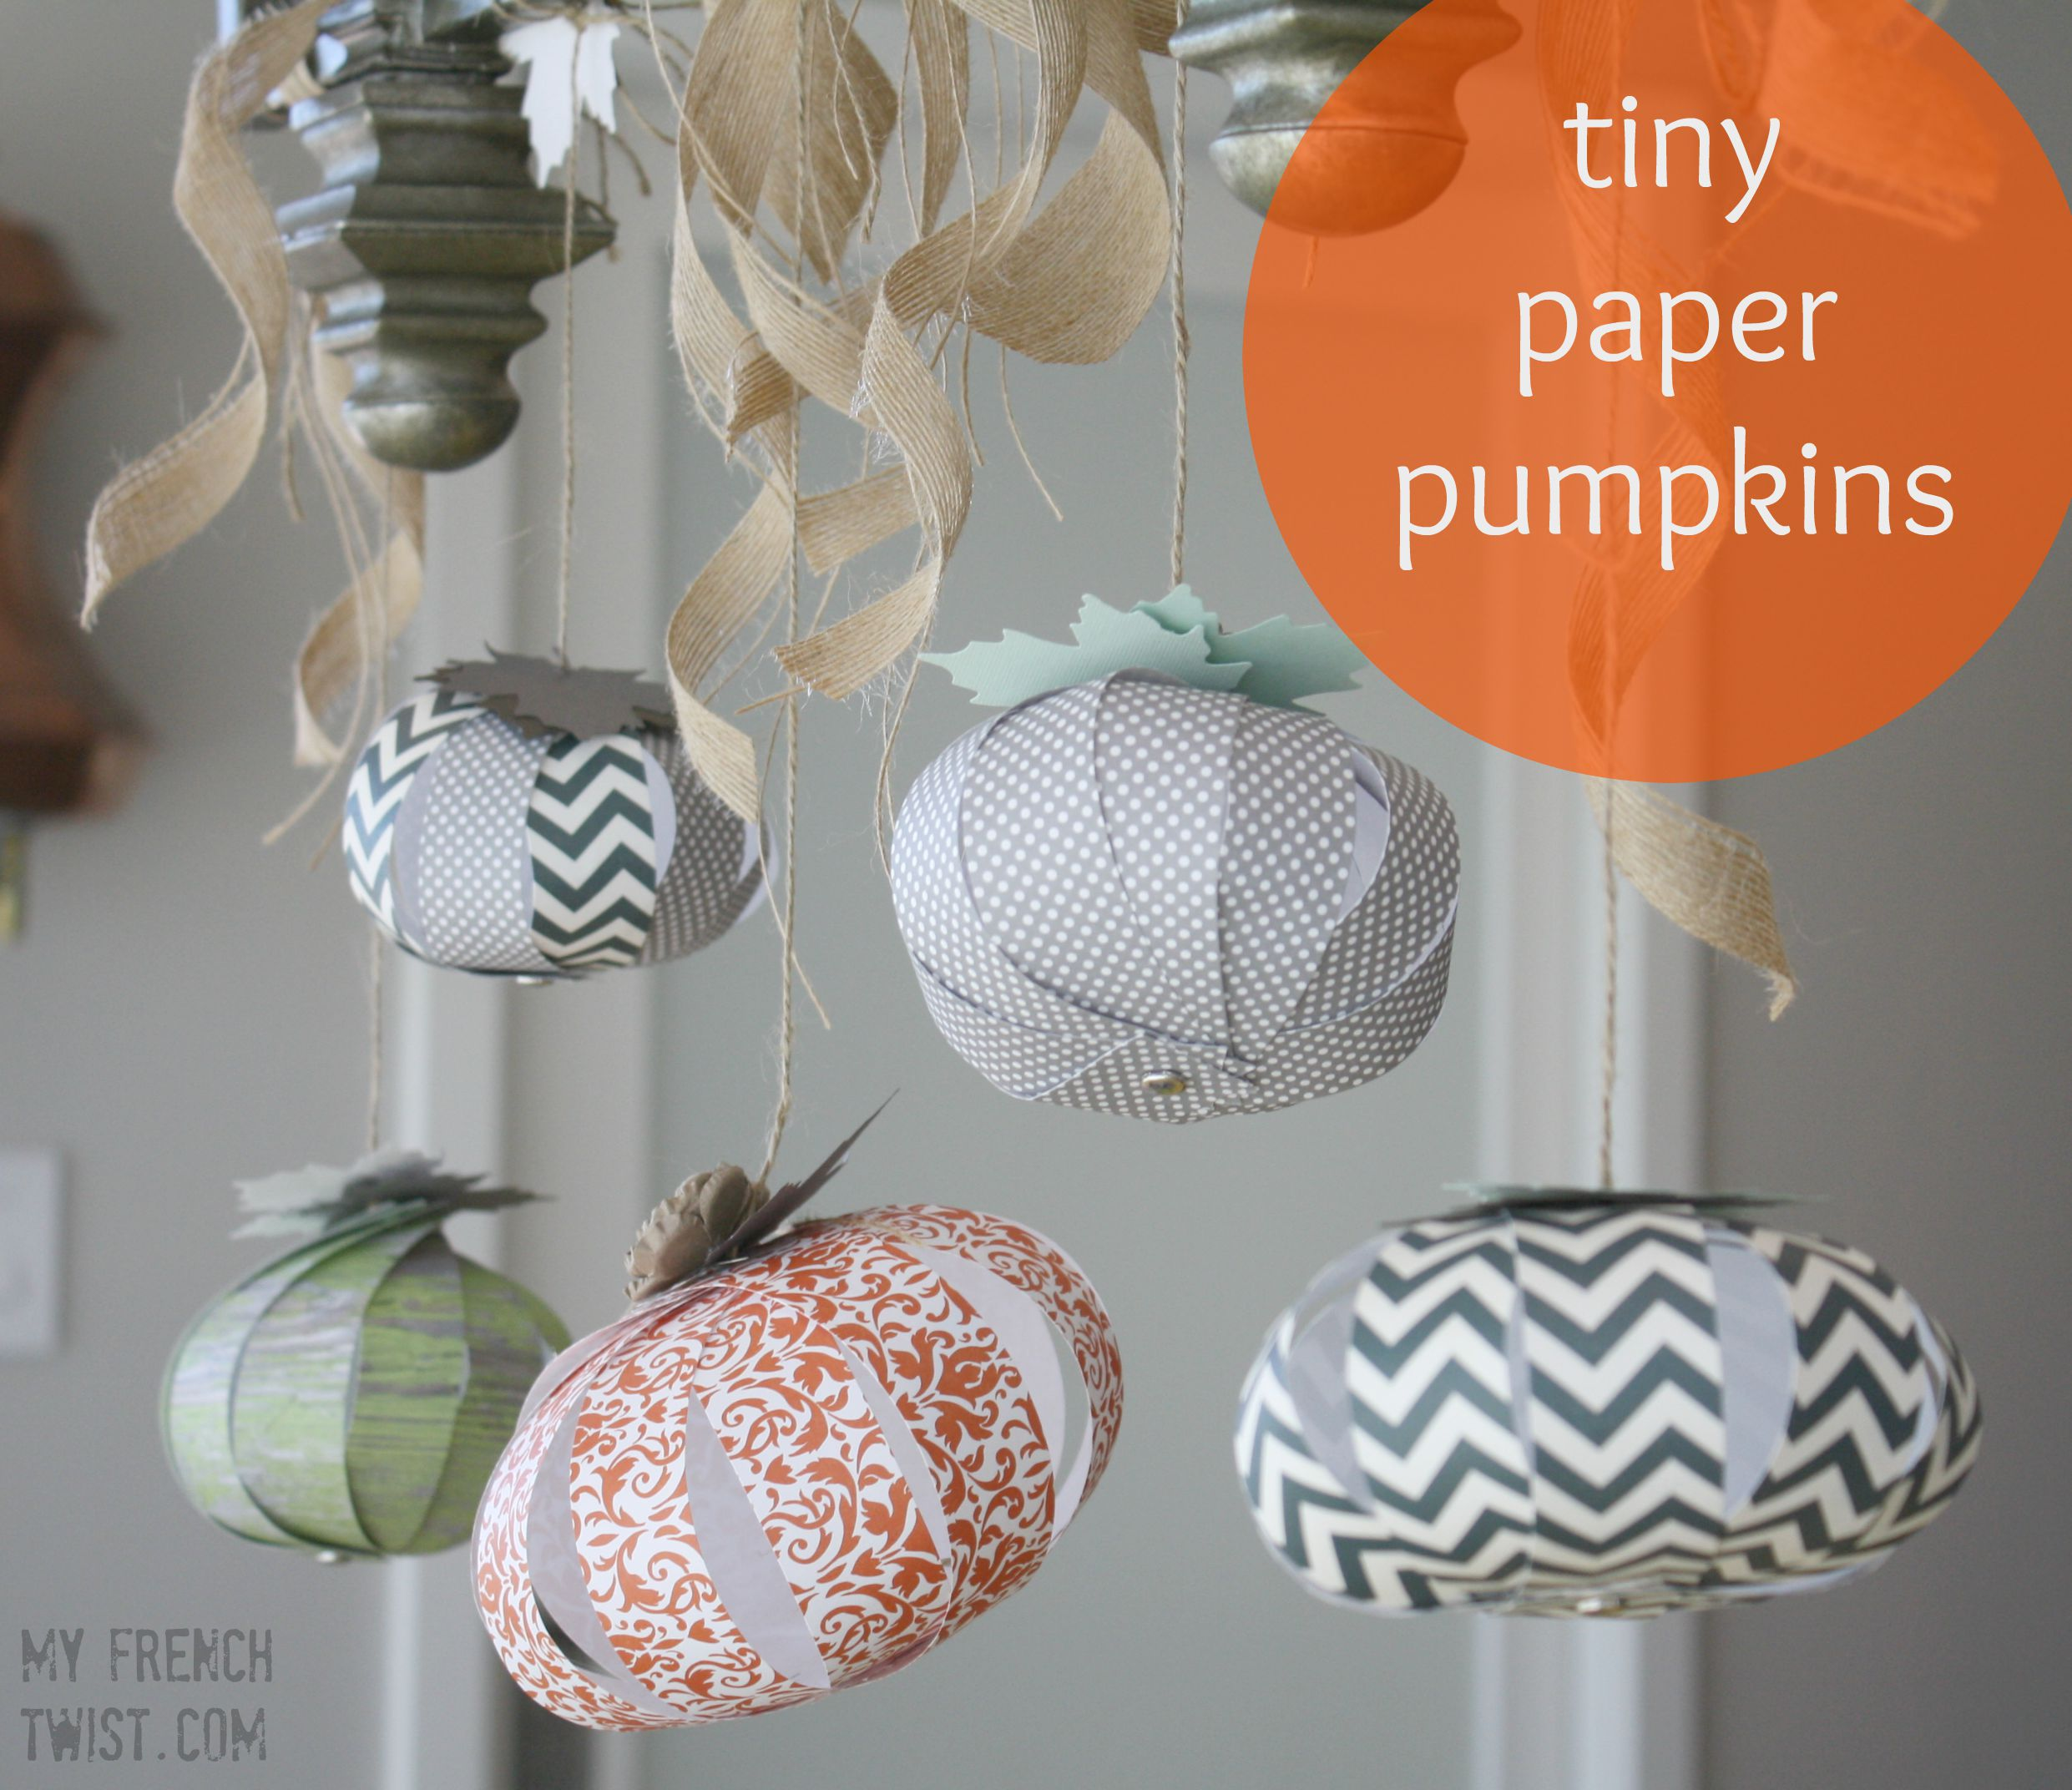 tiny paper pumkins at My French Twist